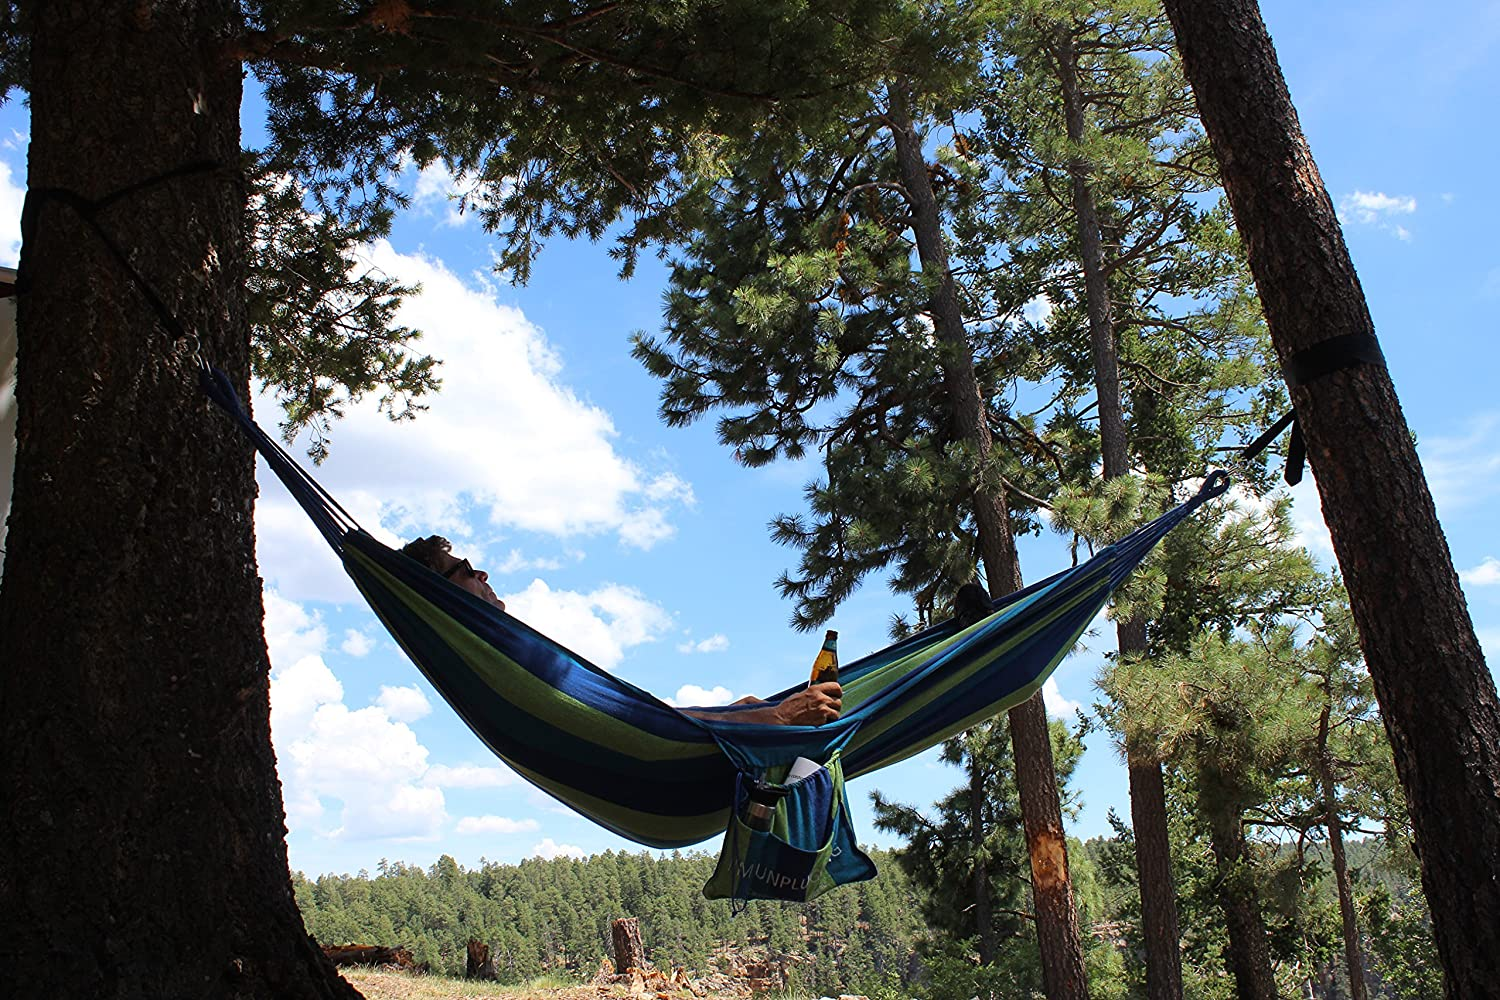 I'm Unplugging Hammock made our list of unique camping gifts for men which are some of the most cool camping gifts for special occasions and the CampingForFoodies hand selected best camping gifts for him are awesome for the rest of the family too!